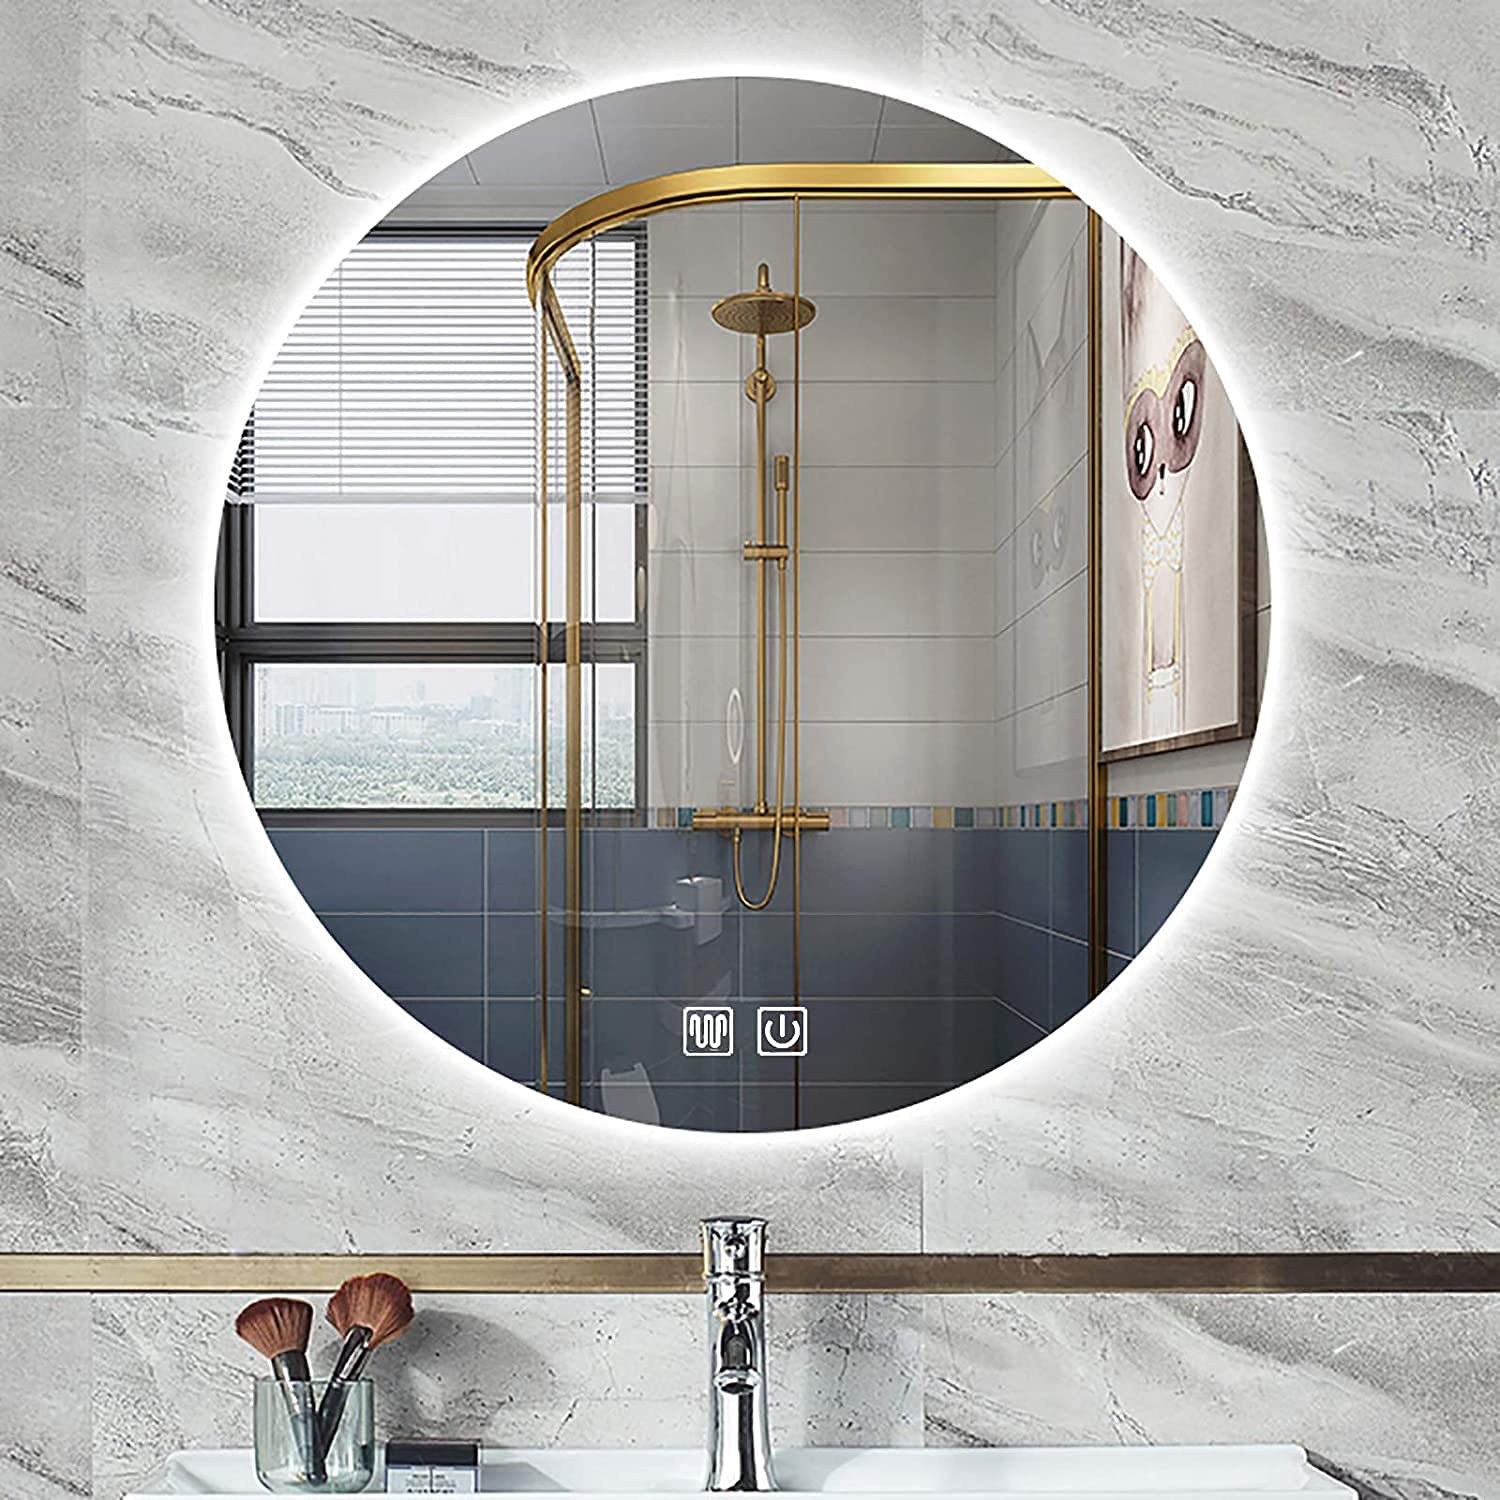 Oakland Mall VIVOCC Round Illuminated LED Bathroom with Mirror Control Fashionable Touch